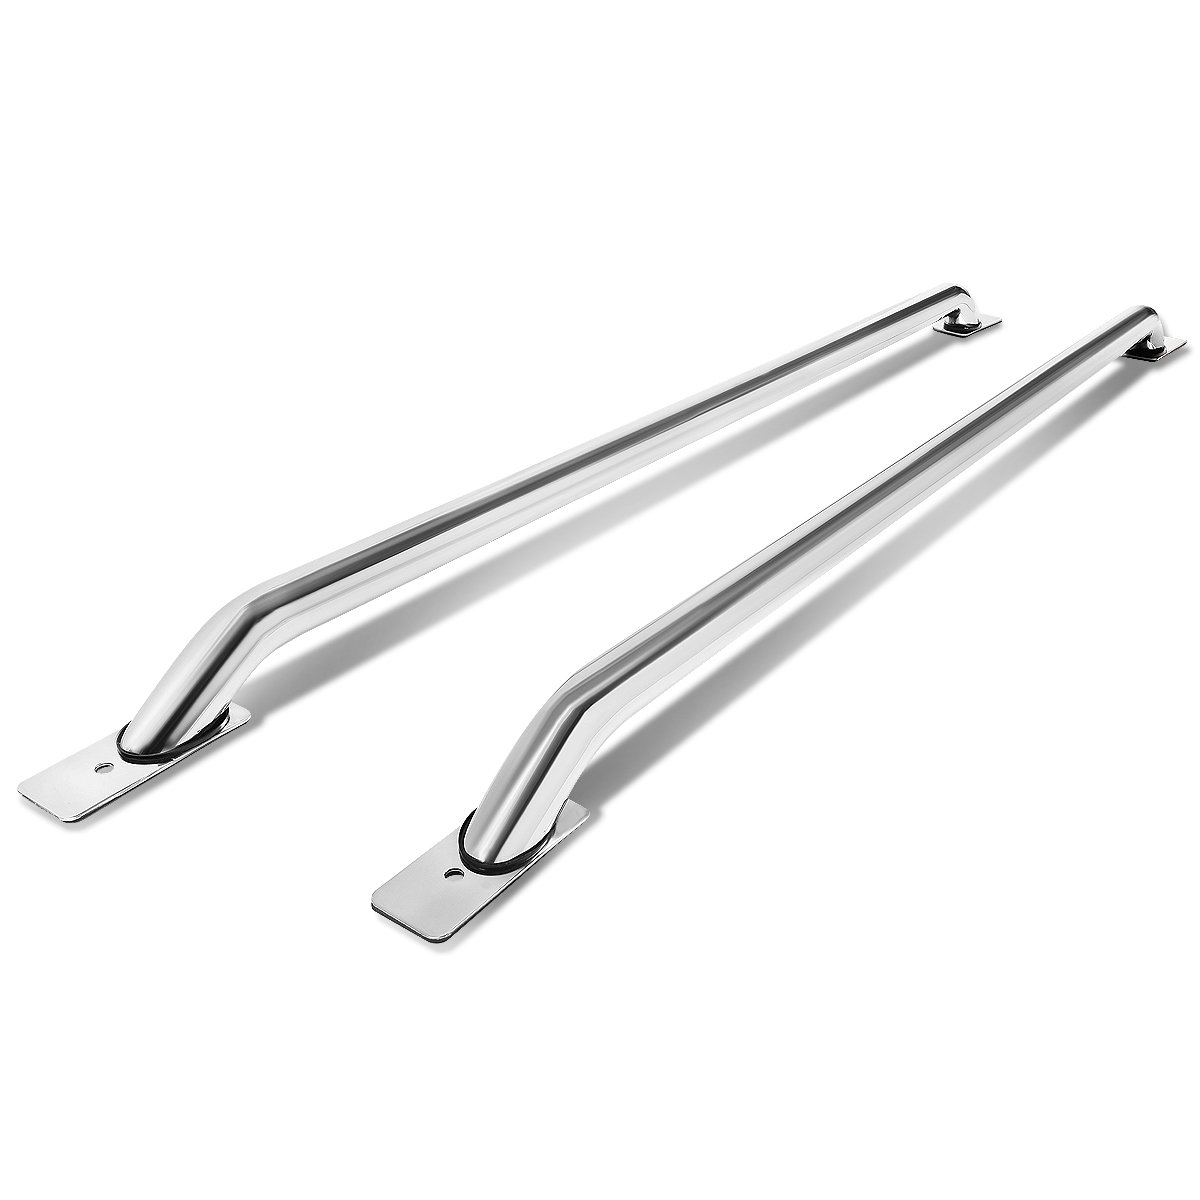 Pair of Stainless Steel Chrome Truck Side Bar Rail For Ford Super Duty 6.5ft Bed Cab Auto Dynasty